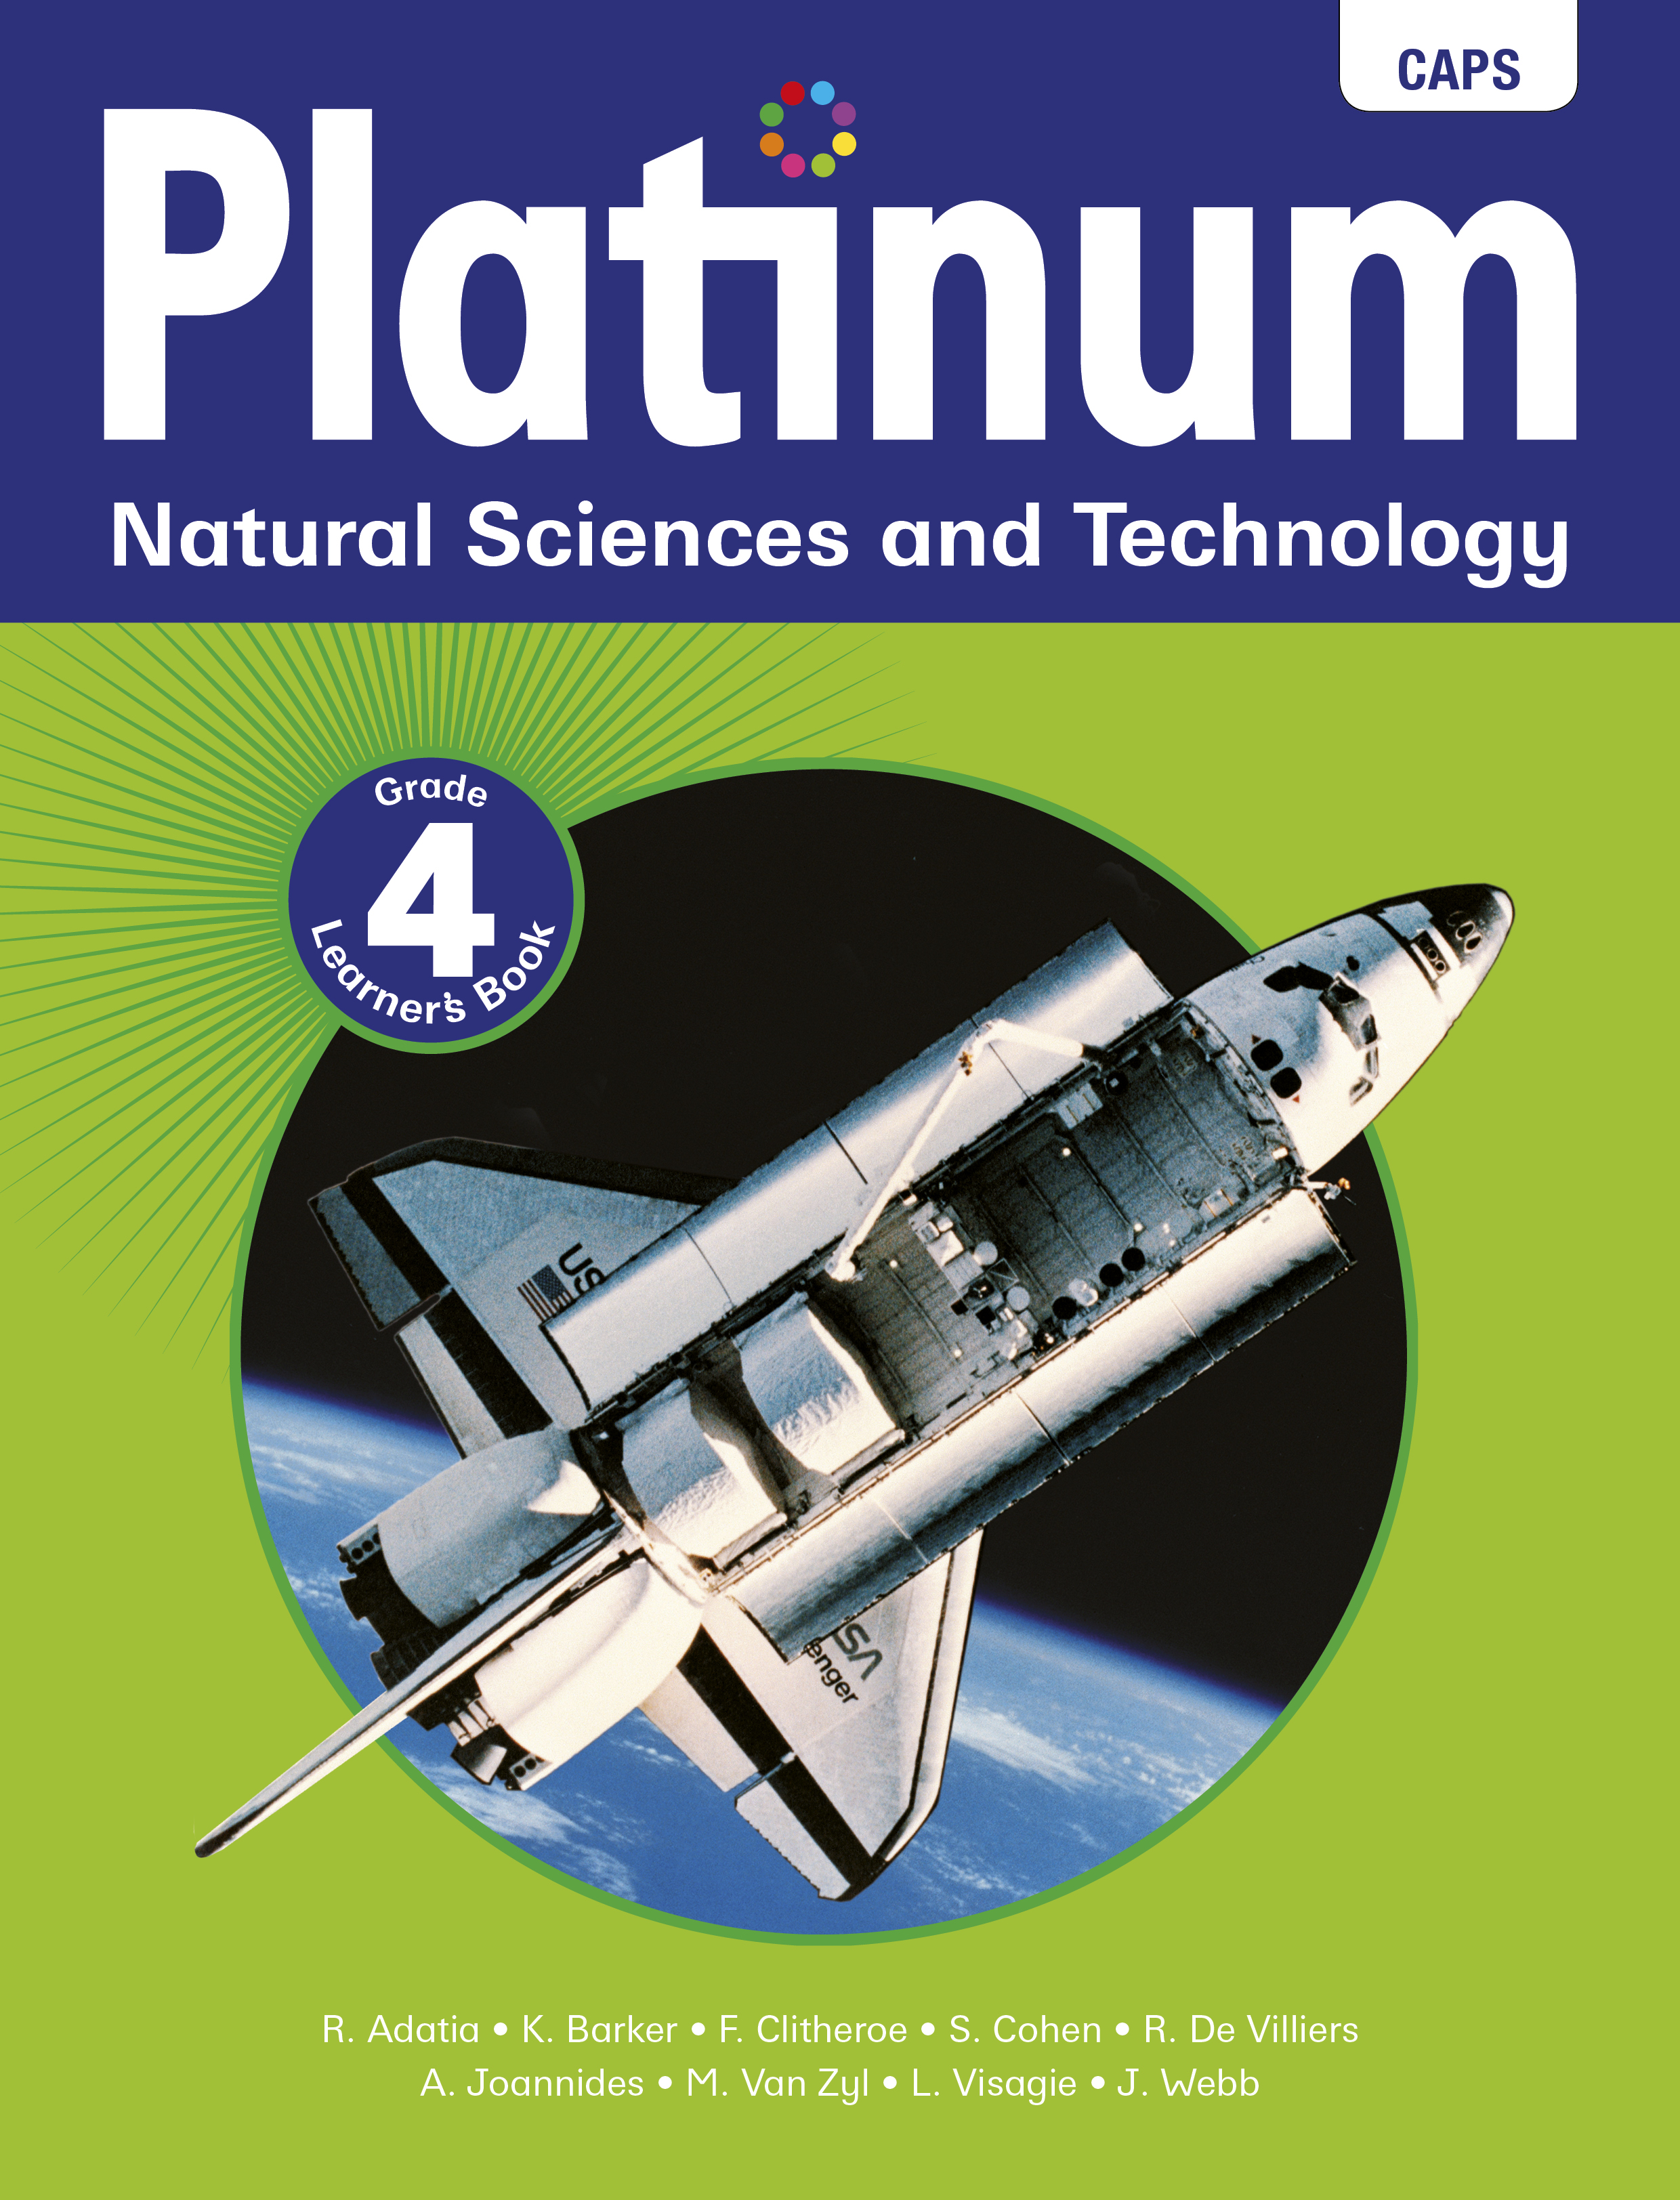 Picture of Platinum Natural Sciences and Technology: Platinum natural sciences and technology: Grade 4: Learner's book Gr 4: Learner's Book